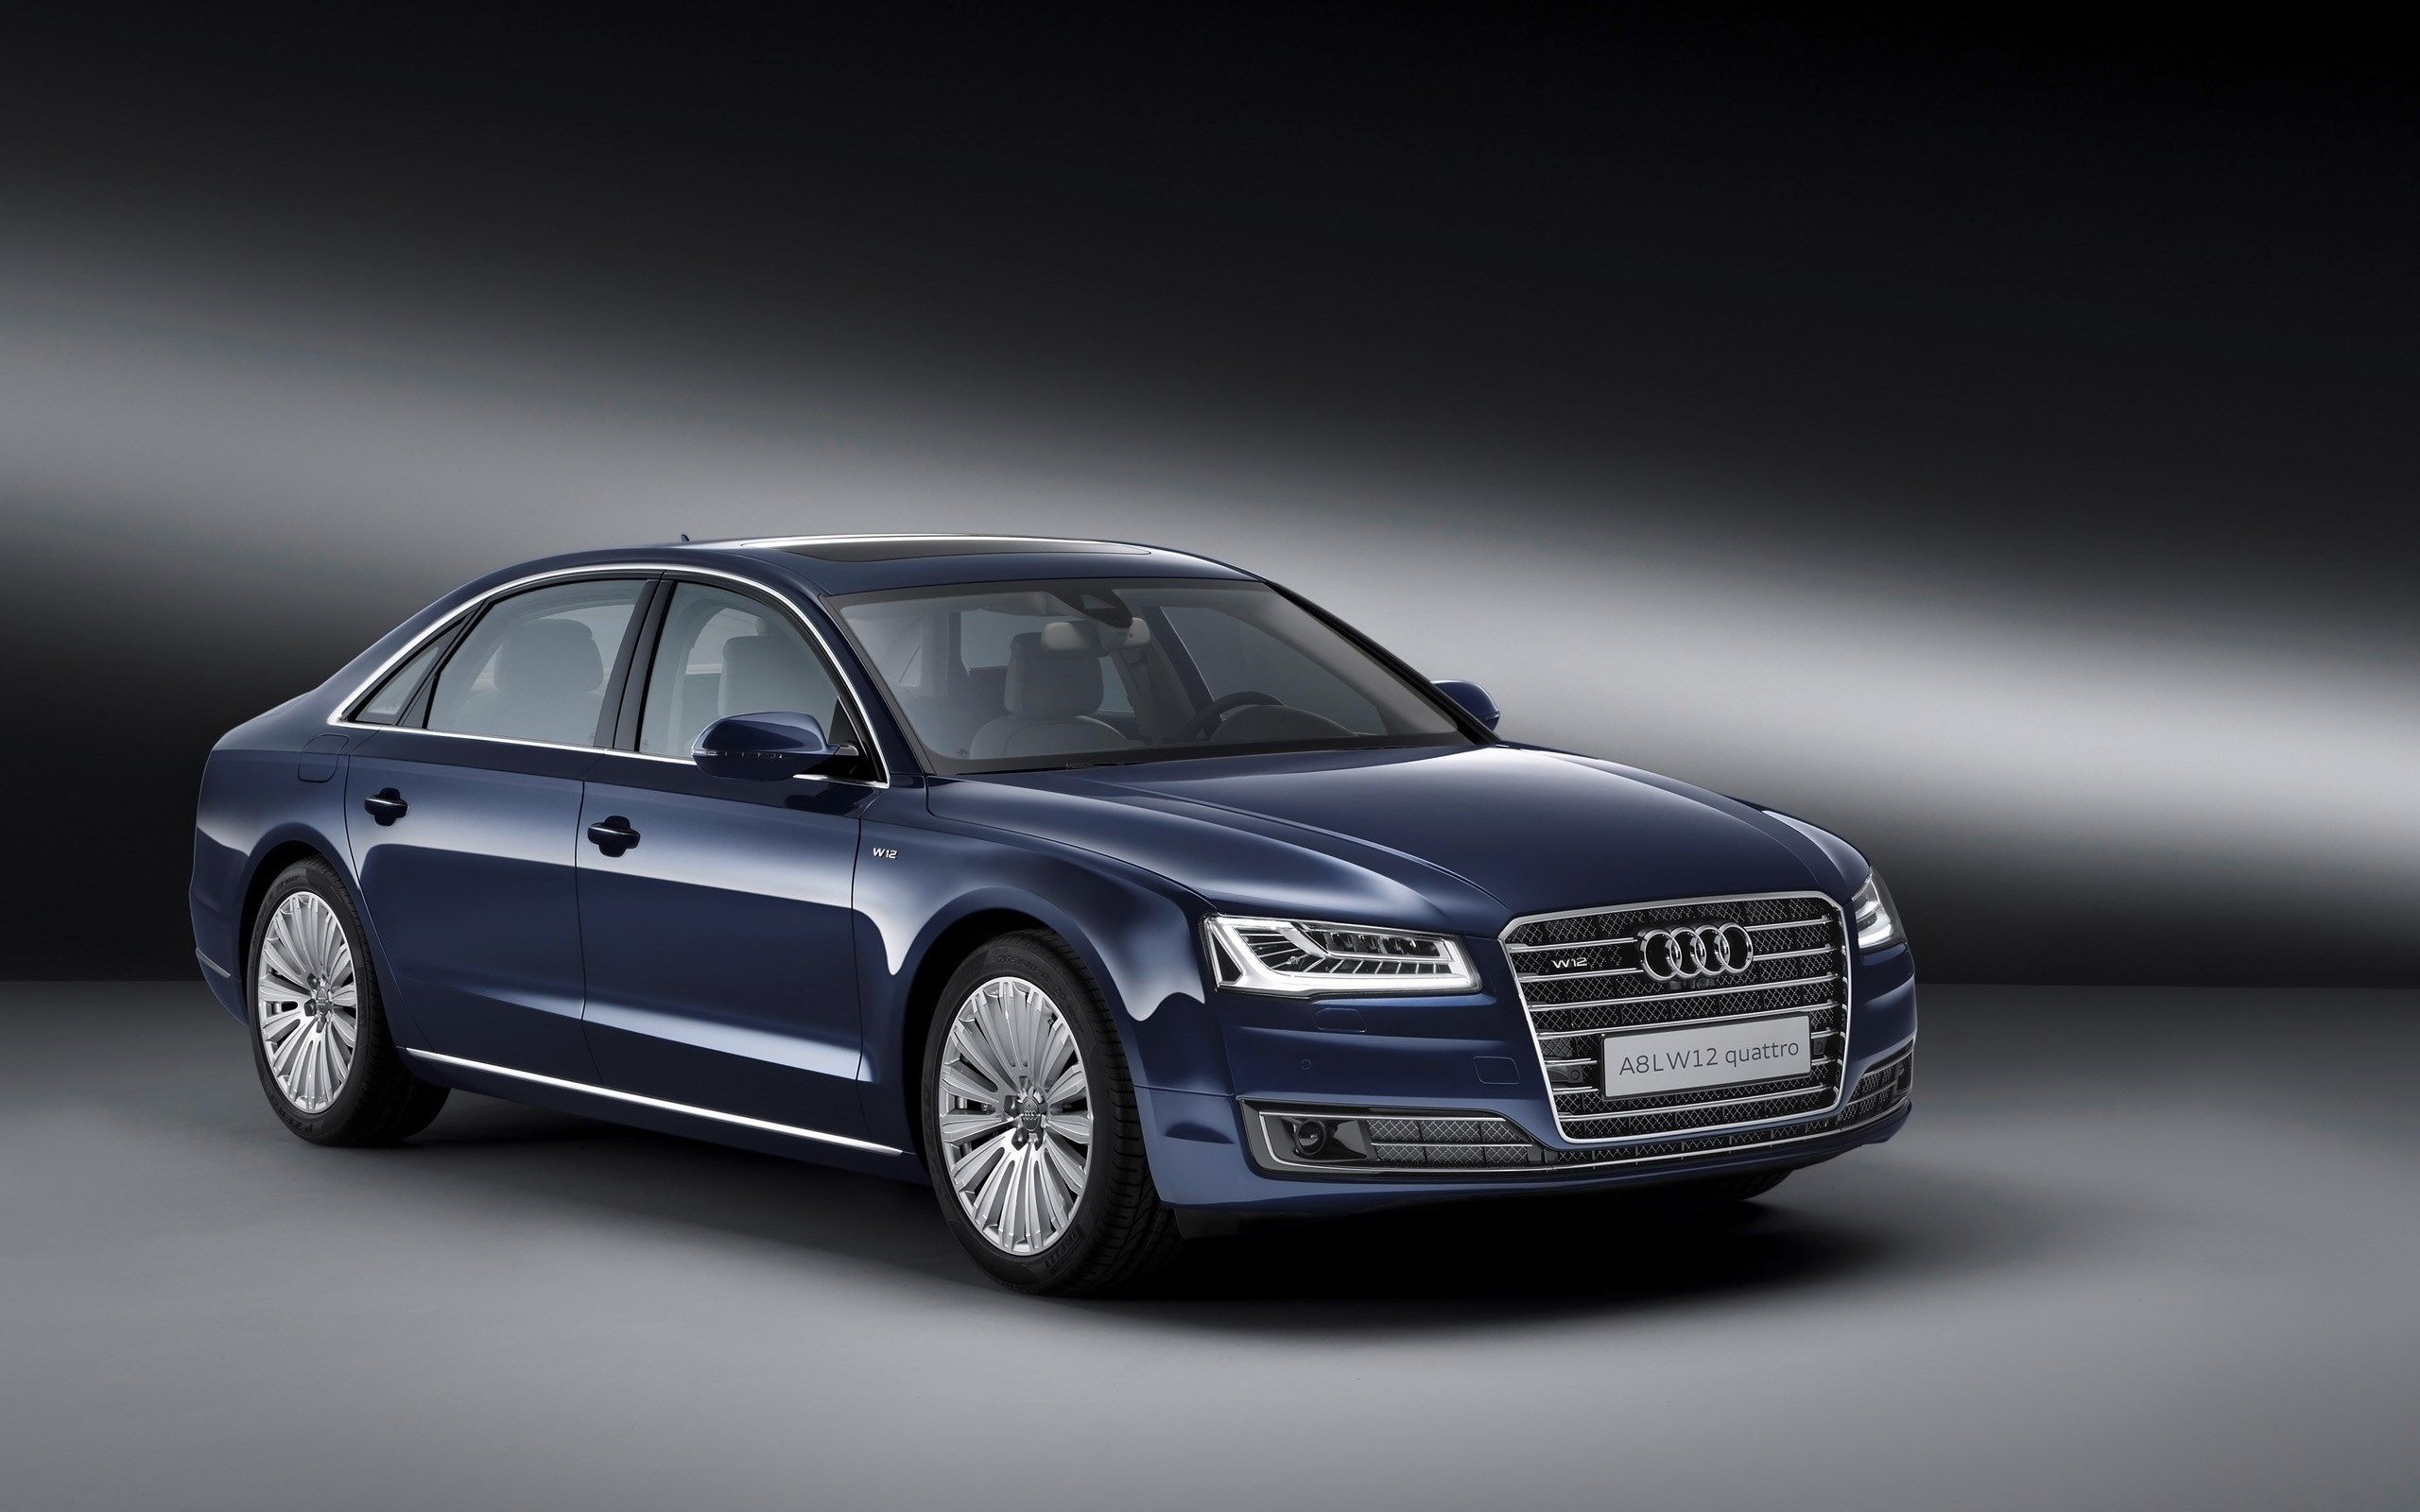 audi a8 l hd wallpapers ololoshenka Audi a8 Audi Audi cars 2560x1600